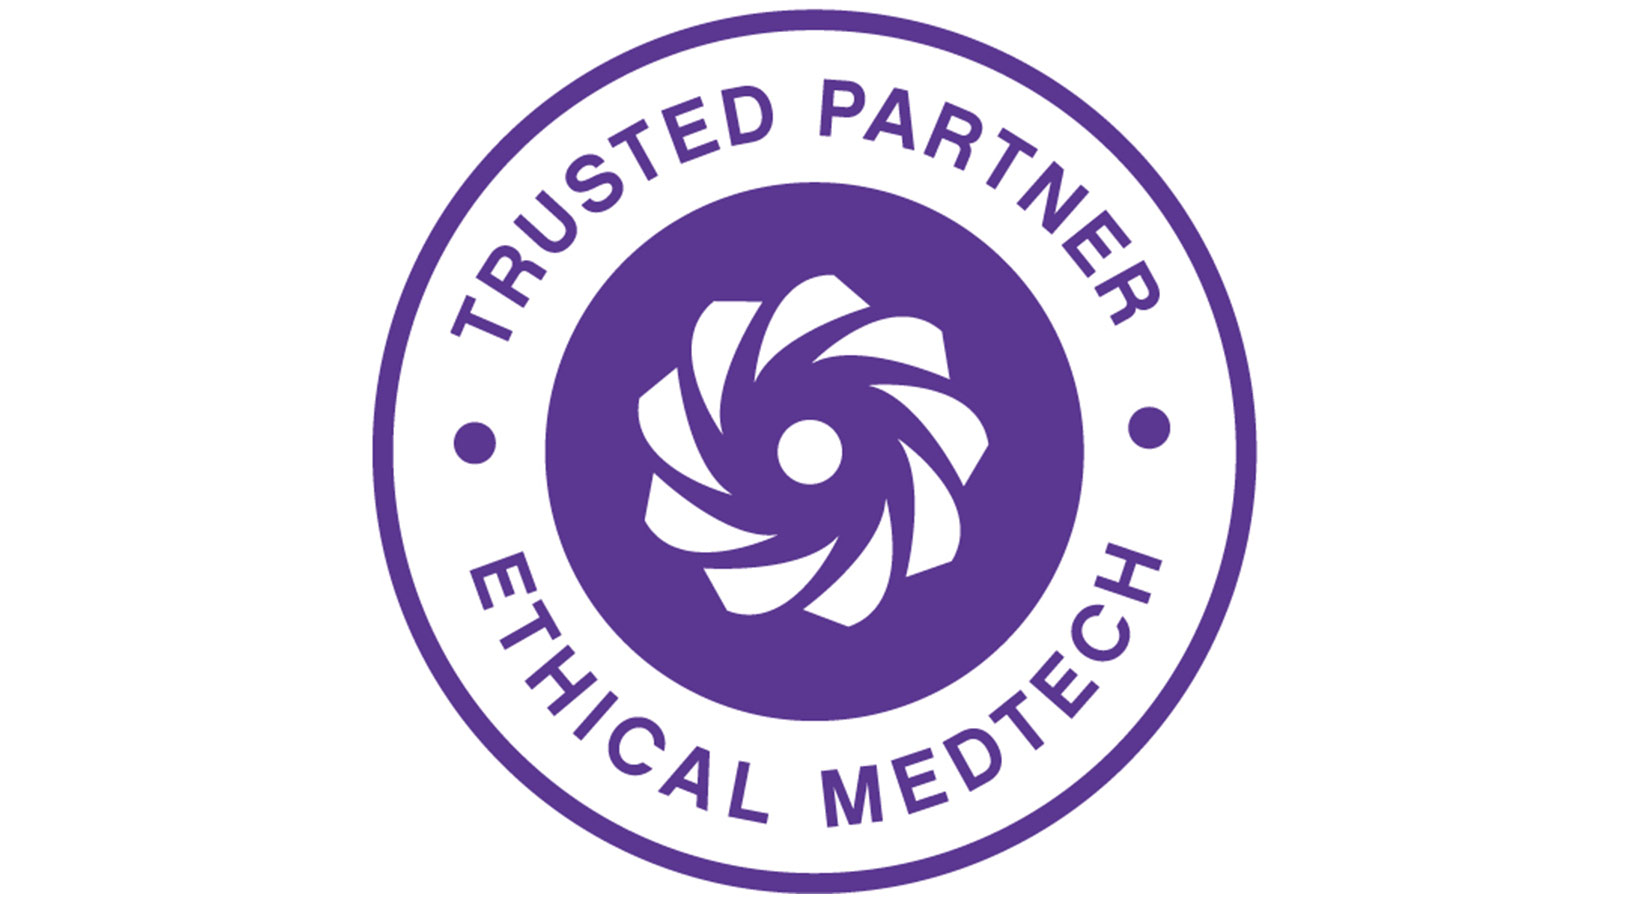 Ethical MedTech Trusted Partner